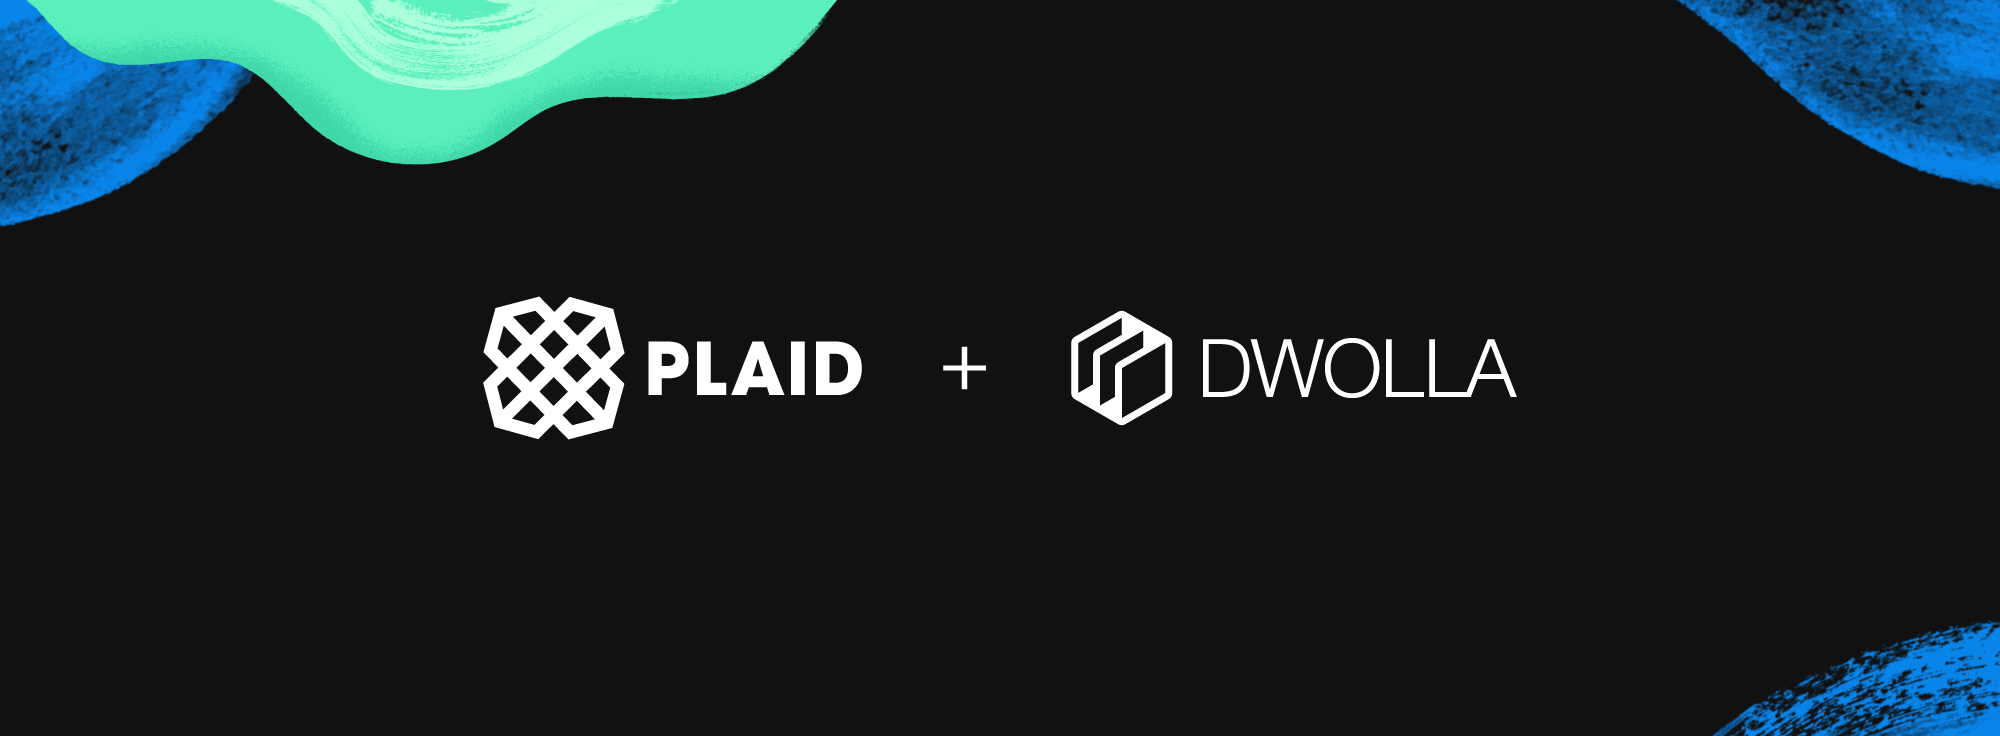 plaid and dwolla connecting to banking system image